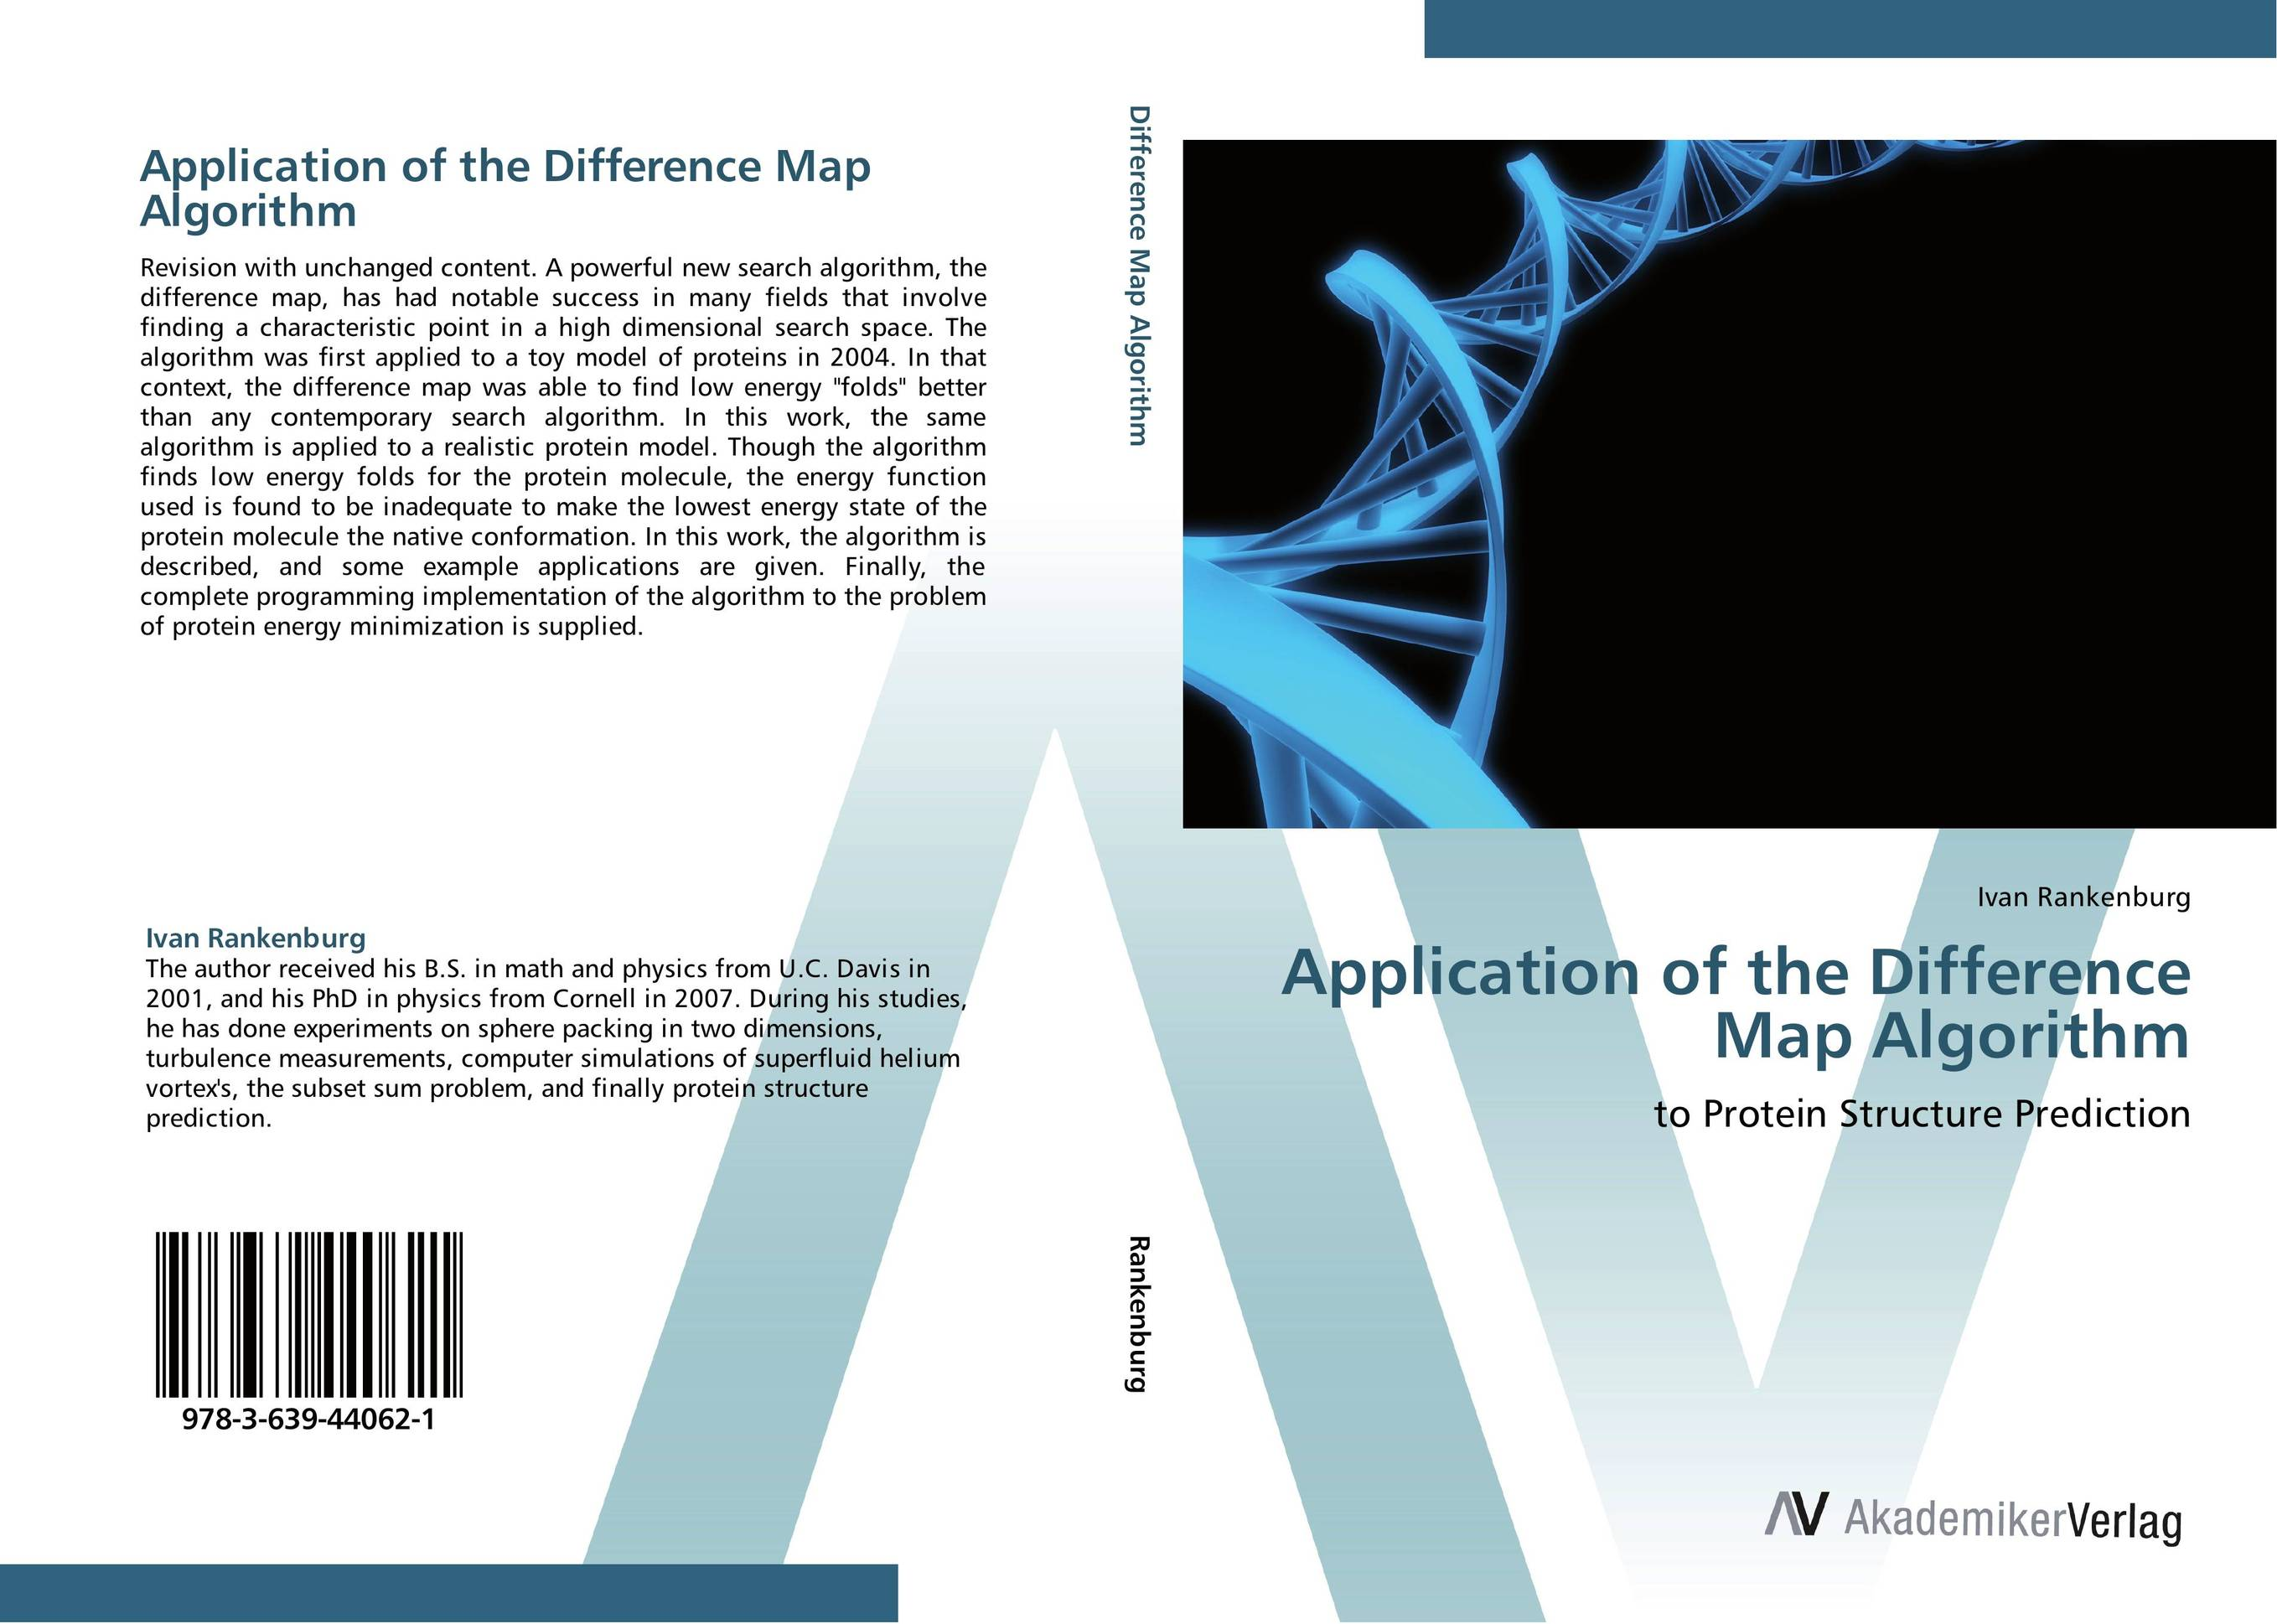 Application of the Difference Map Algorithm